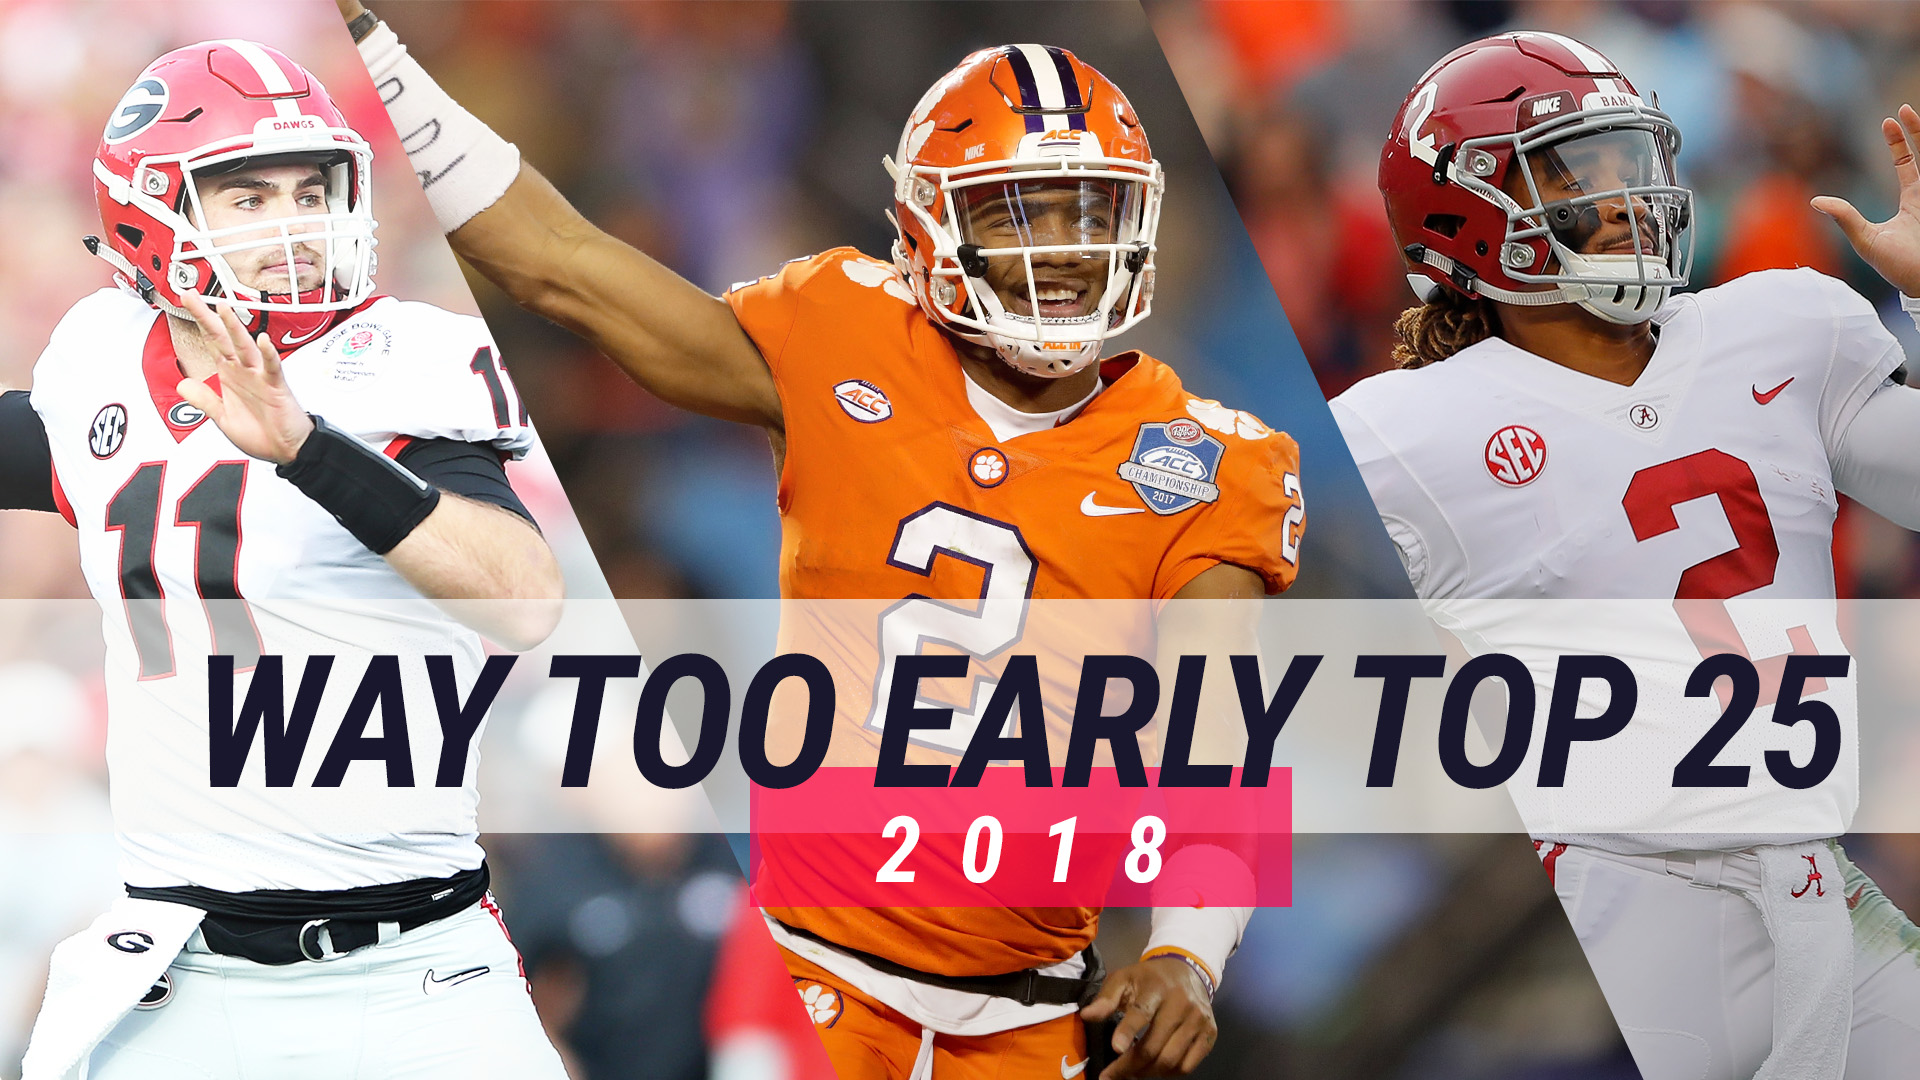 timeless design ebf07 9b215 College football top-25 season previews  What to expect from each team in  2018